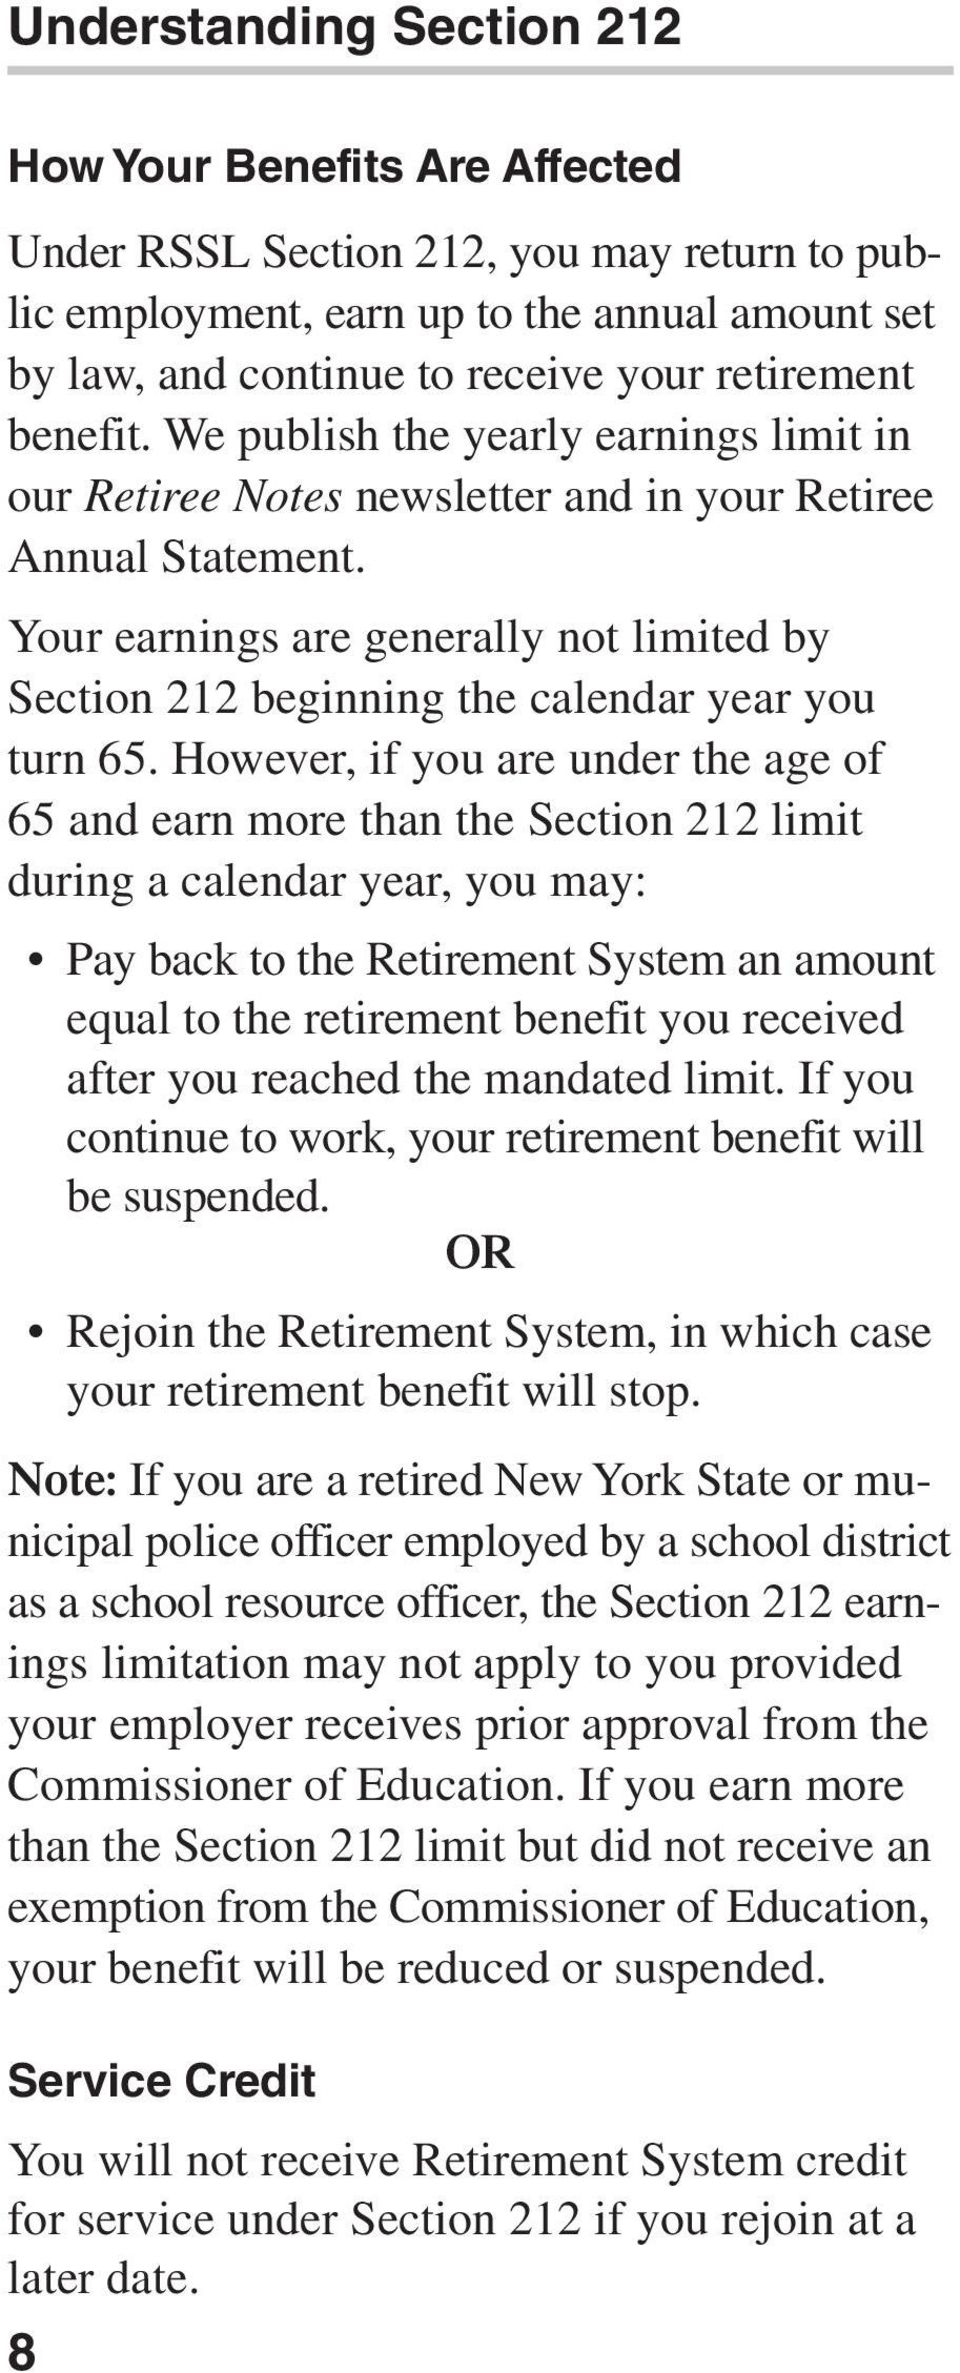 Your earnings are generally not limited by Section 212 beginning the calendar year you turn 65.